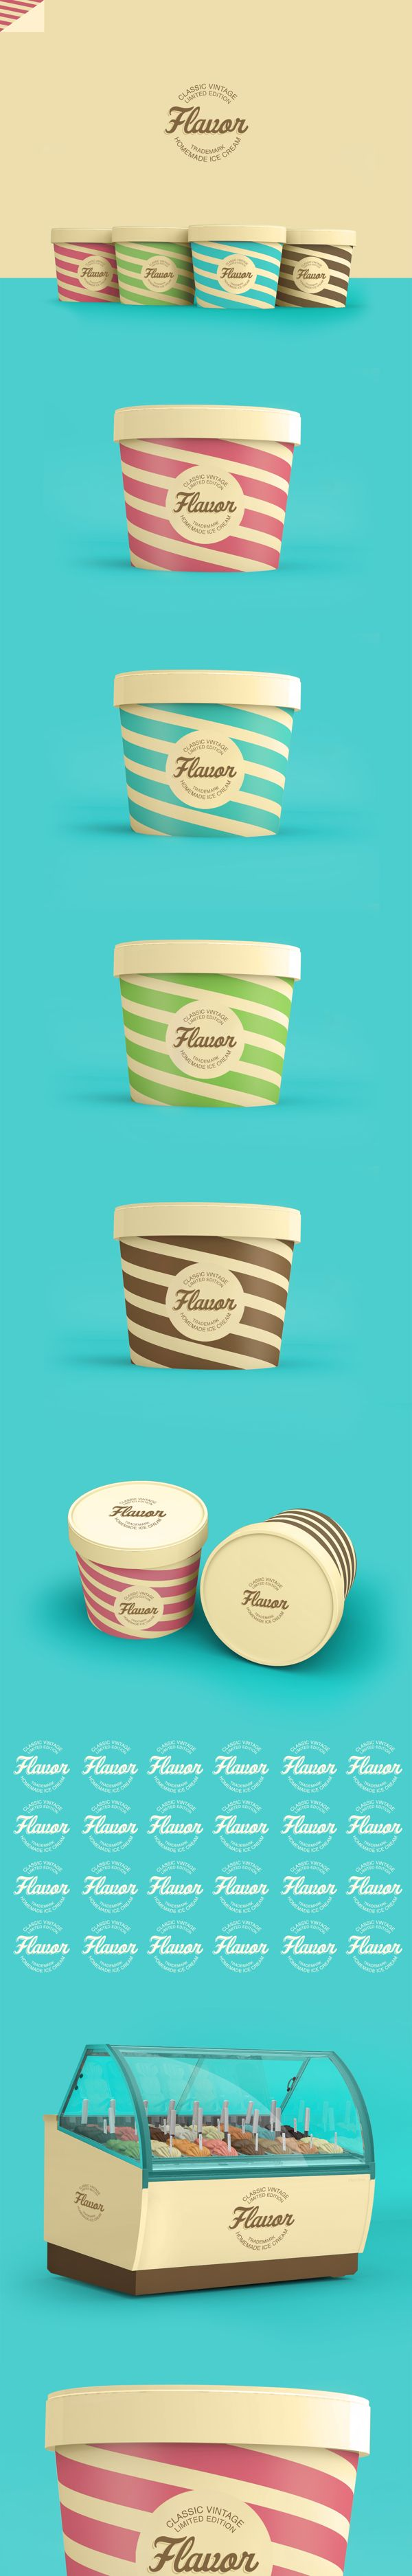 Flavor Ice Cream Packaging by Renan Vizzotto, via Behance